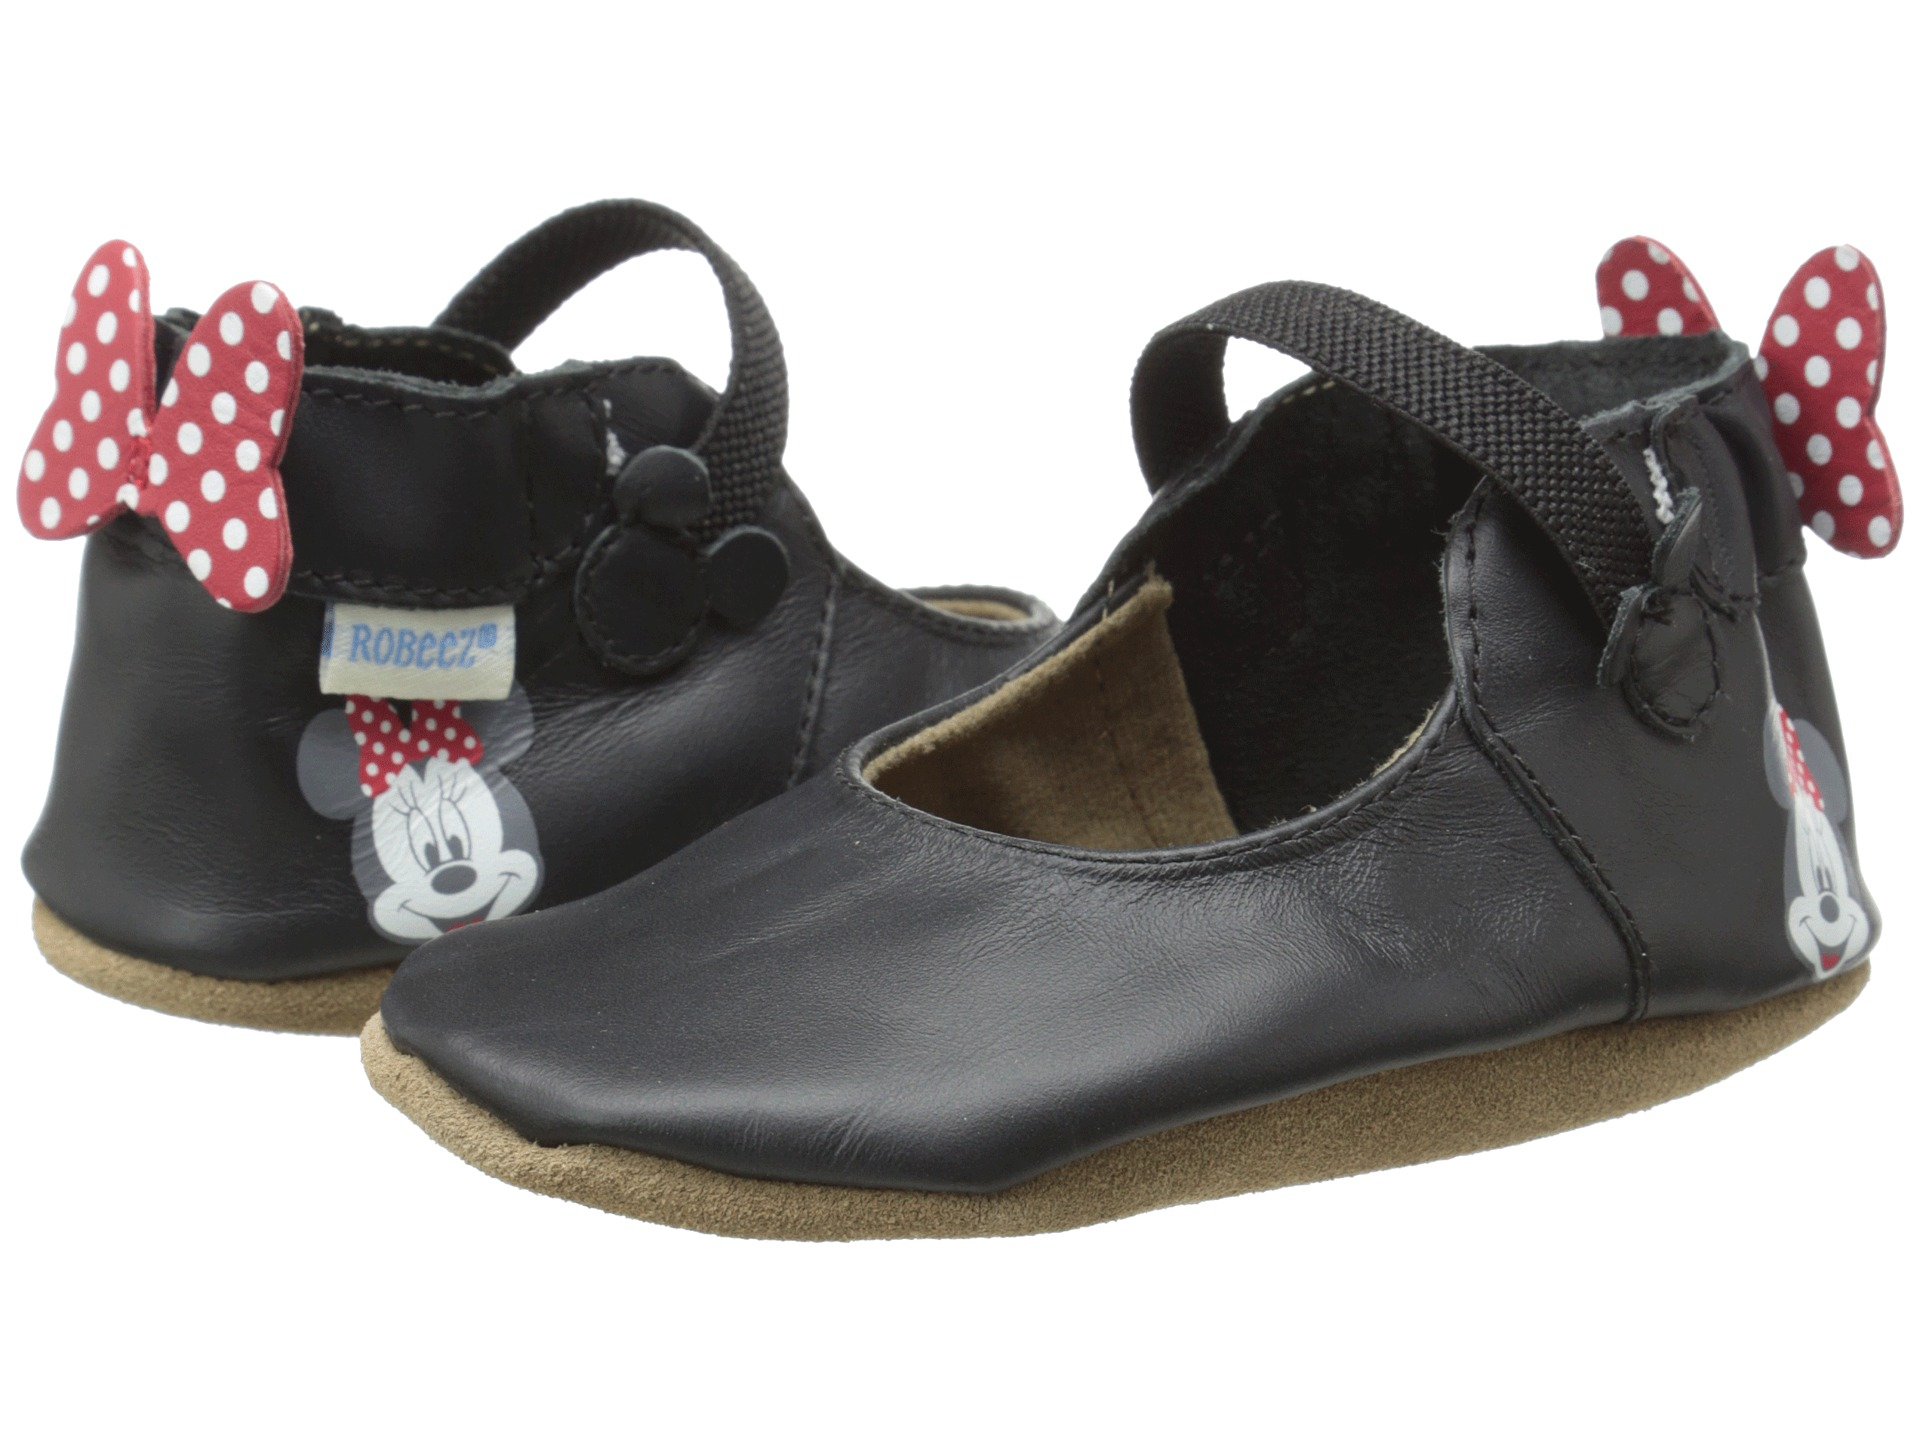 For your child´s first leather shoe, choose Robeez. Since , Robeez Footwear Ltd. has grown from one mom's home-based business to the leading worldwide manufacturer of soft-soled, flexible and lightweight shoes for newborns to four-year-olds. For a Robeez .